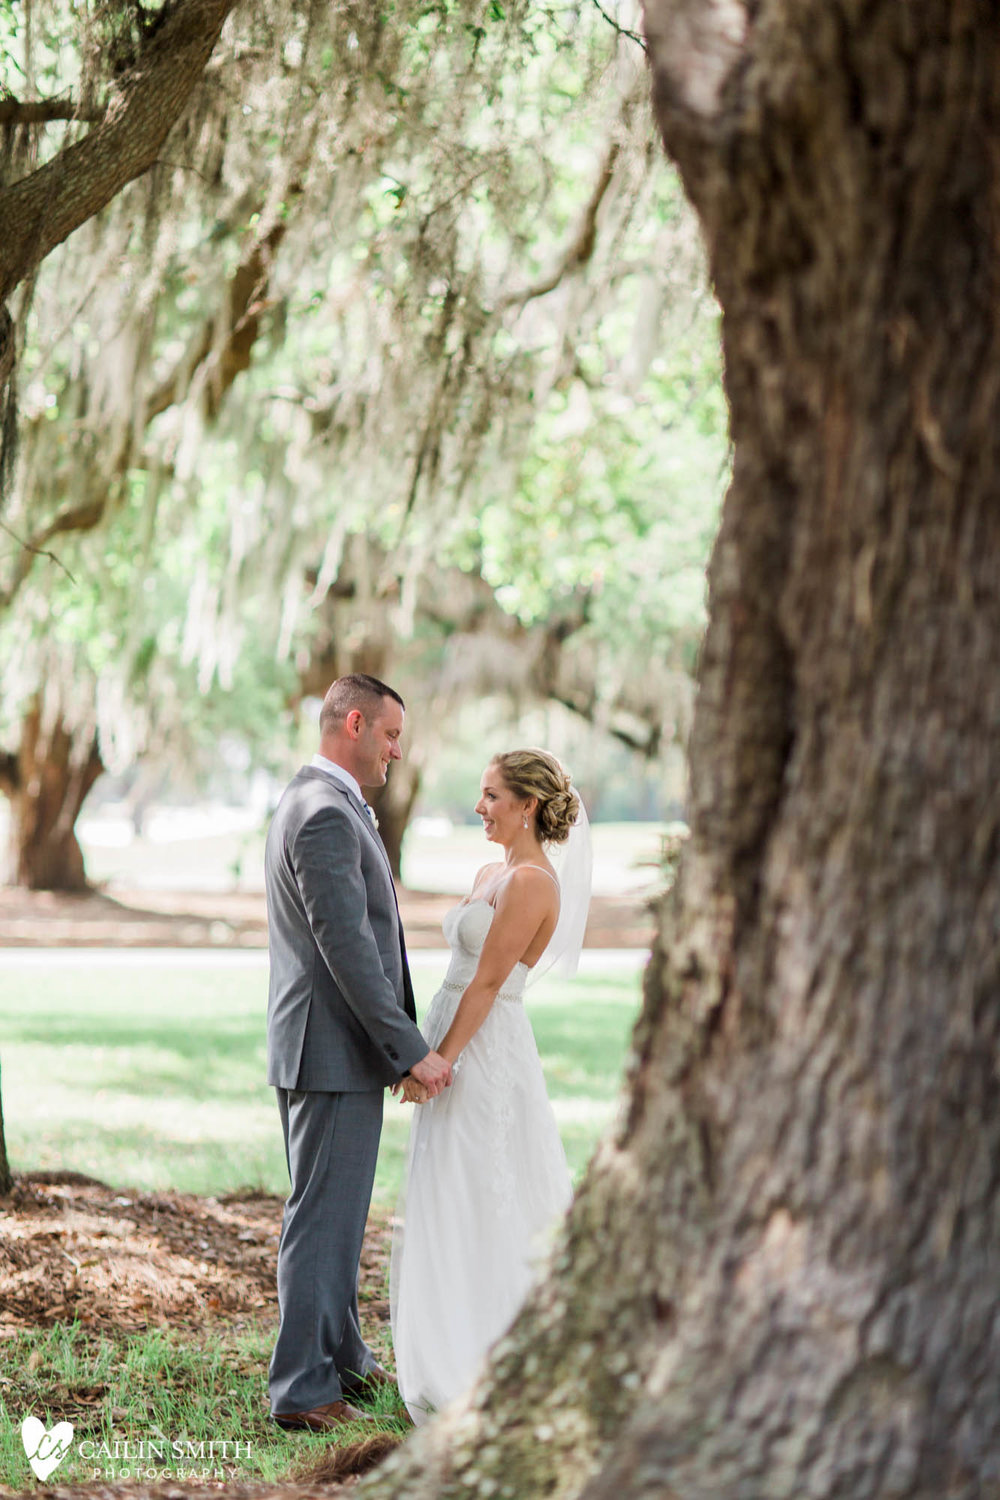 Sarah_Justin_St_Simons_Island_Lighthouse_Wedding_Photography_023.jpg